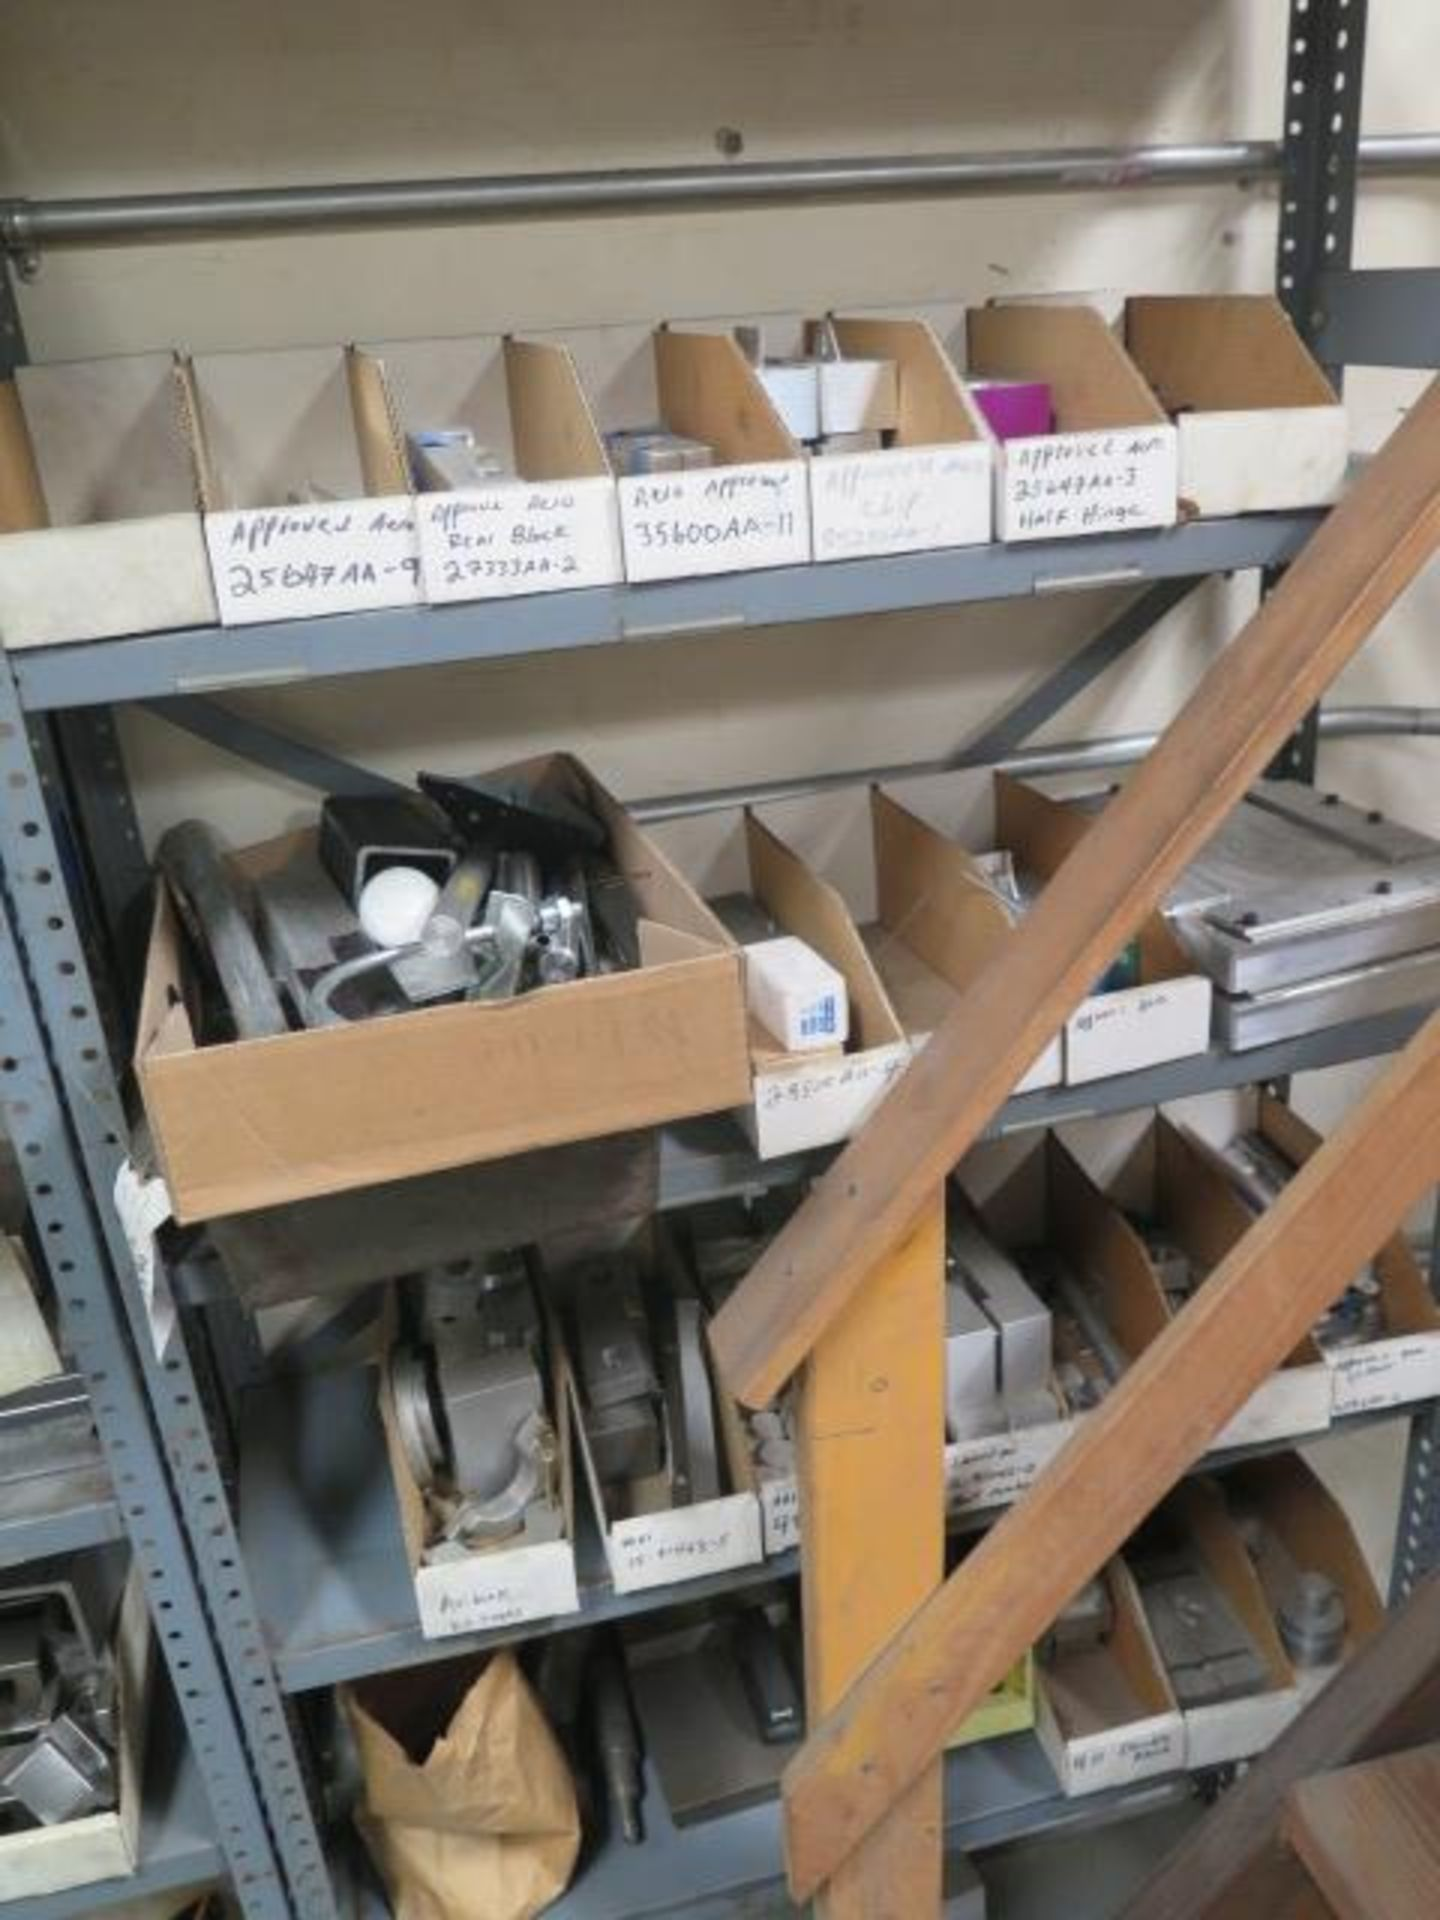 Vise Jaws, Fixtures and Misc w/ (7) Shelves (SOLD AS-IS - NO WARRANTY) - Image 2 of 6